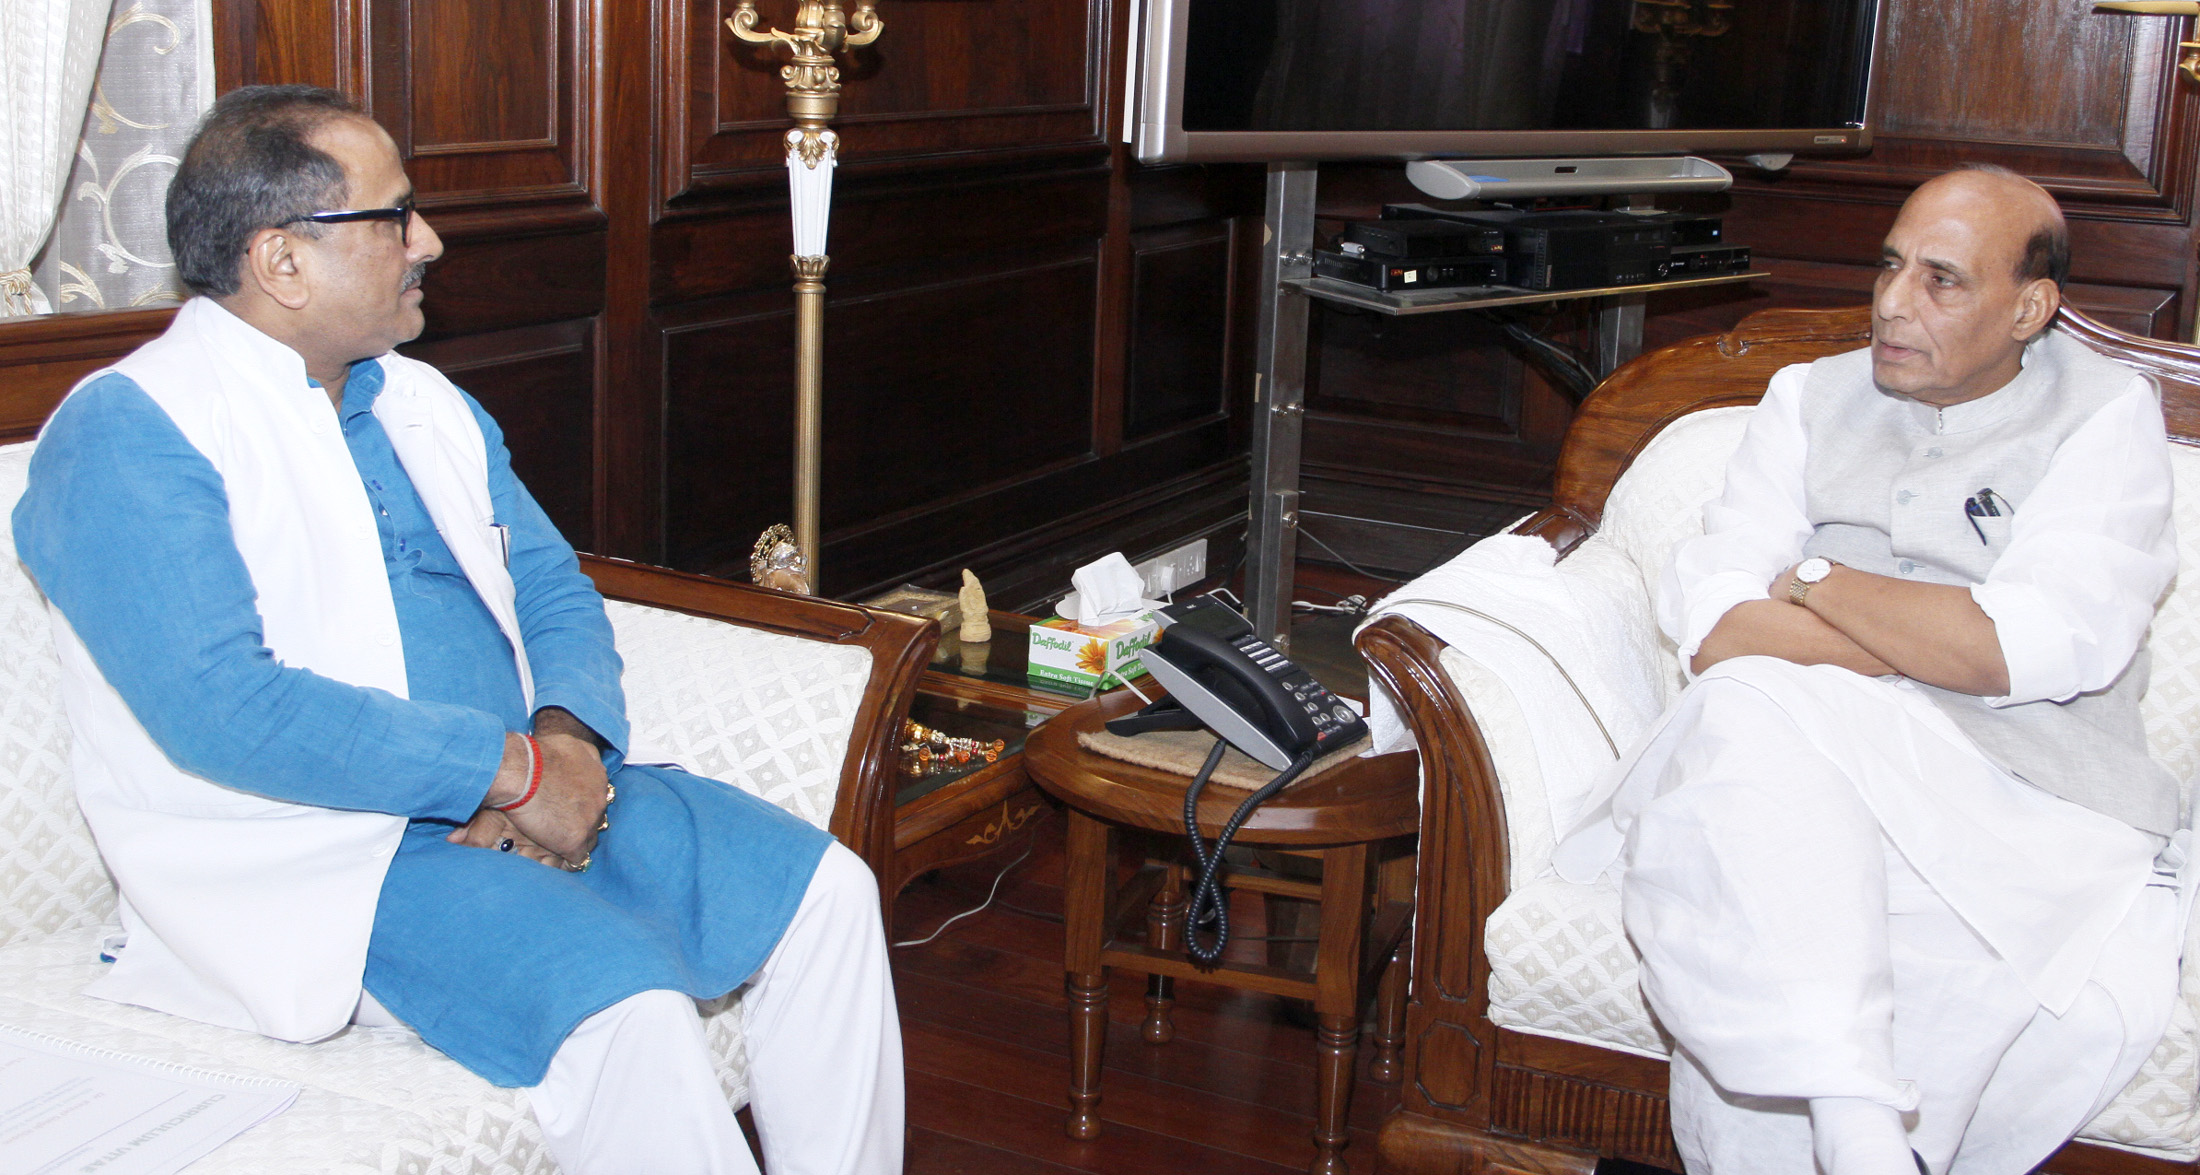 The Deputy Chief Minister of Jammu and Kashmir, Dr. Nirmal Kumar Singh calling on the Union Home Minister, Shri Rajnath Singh, in New Delhi on August 13, 2015.